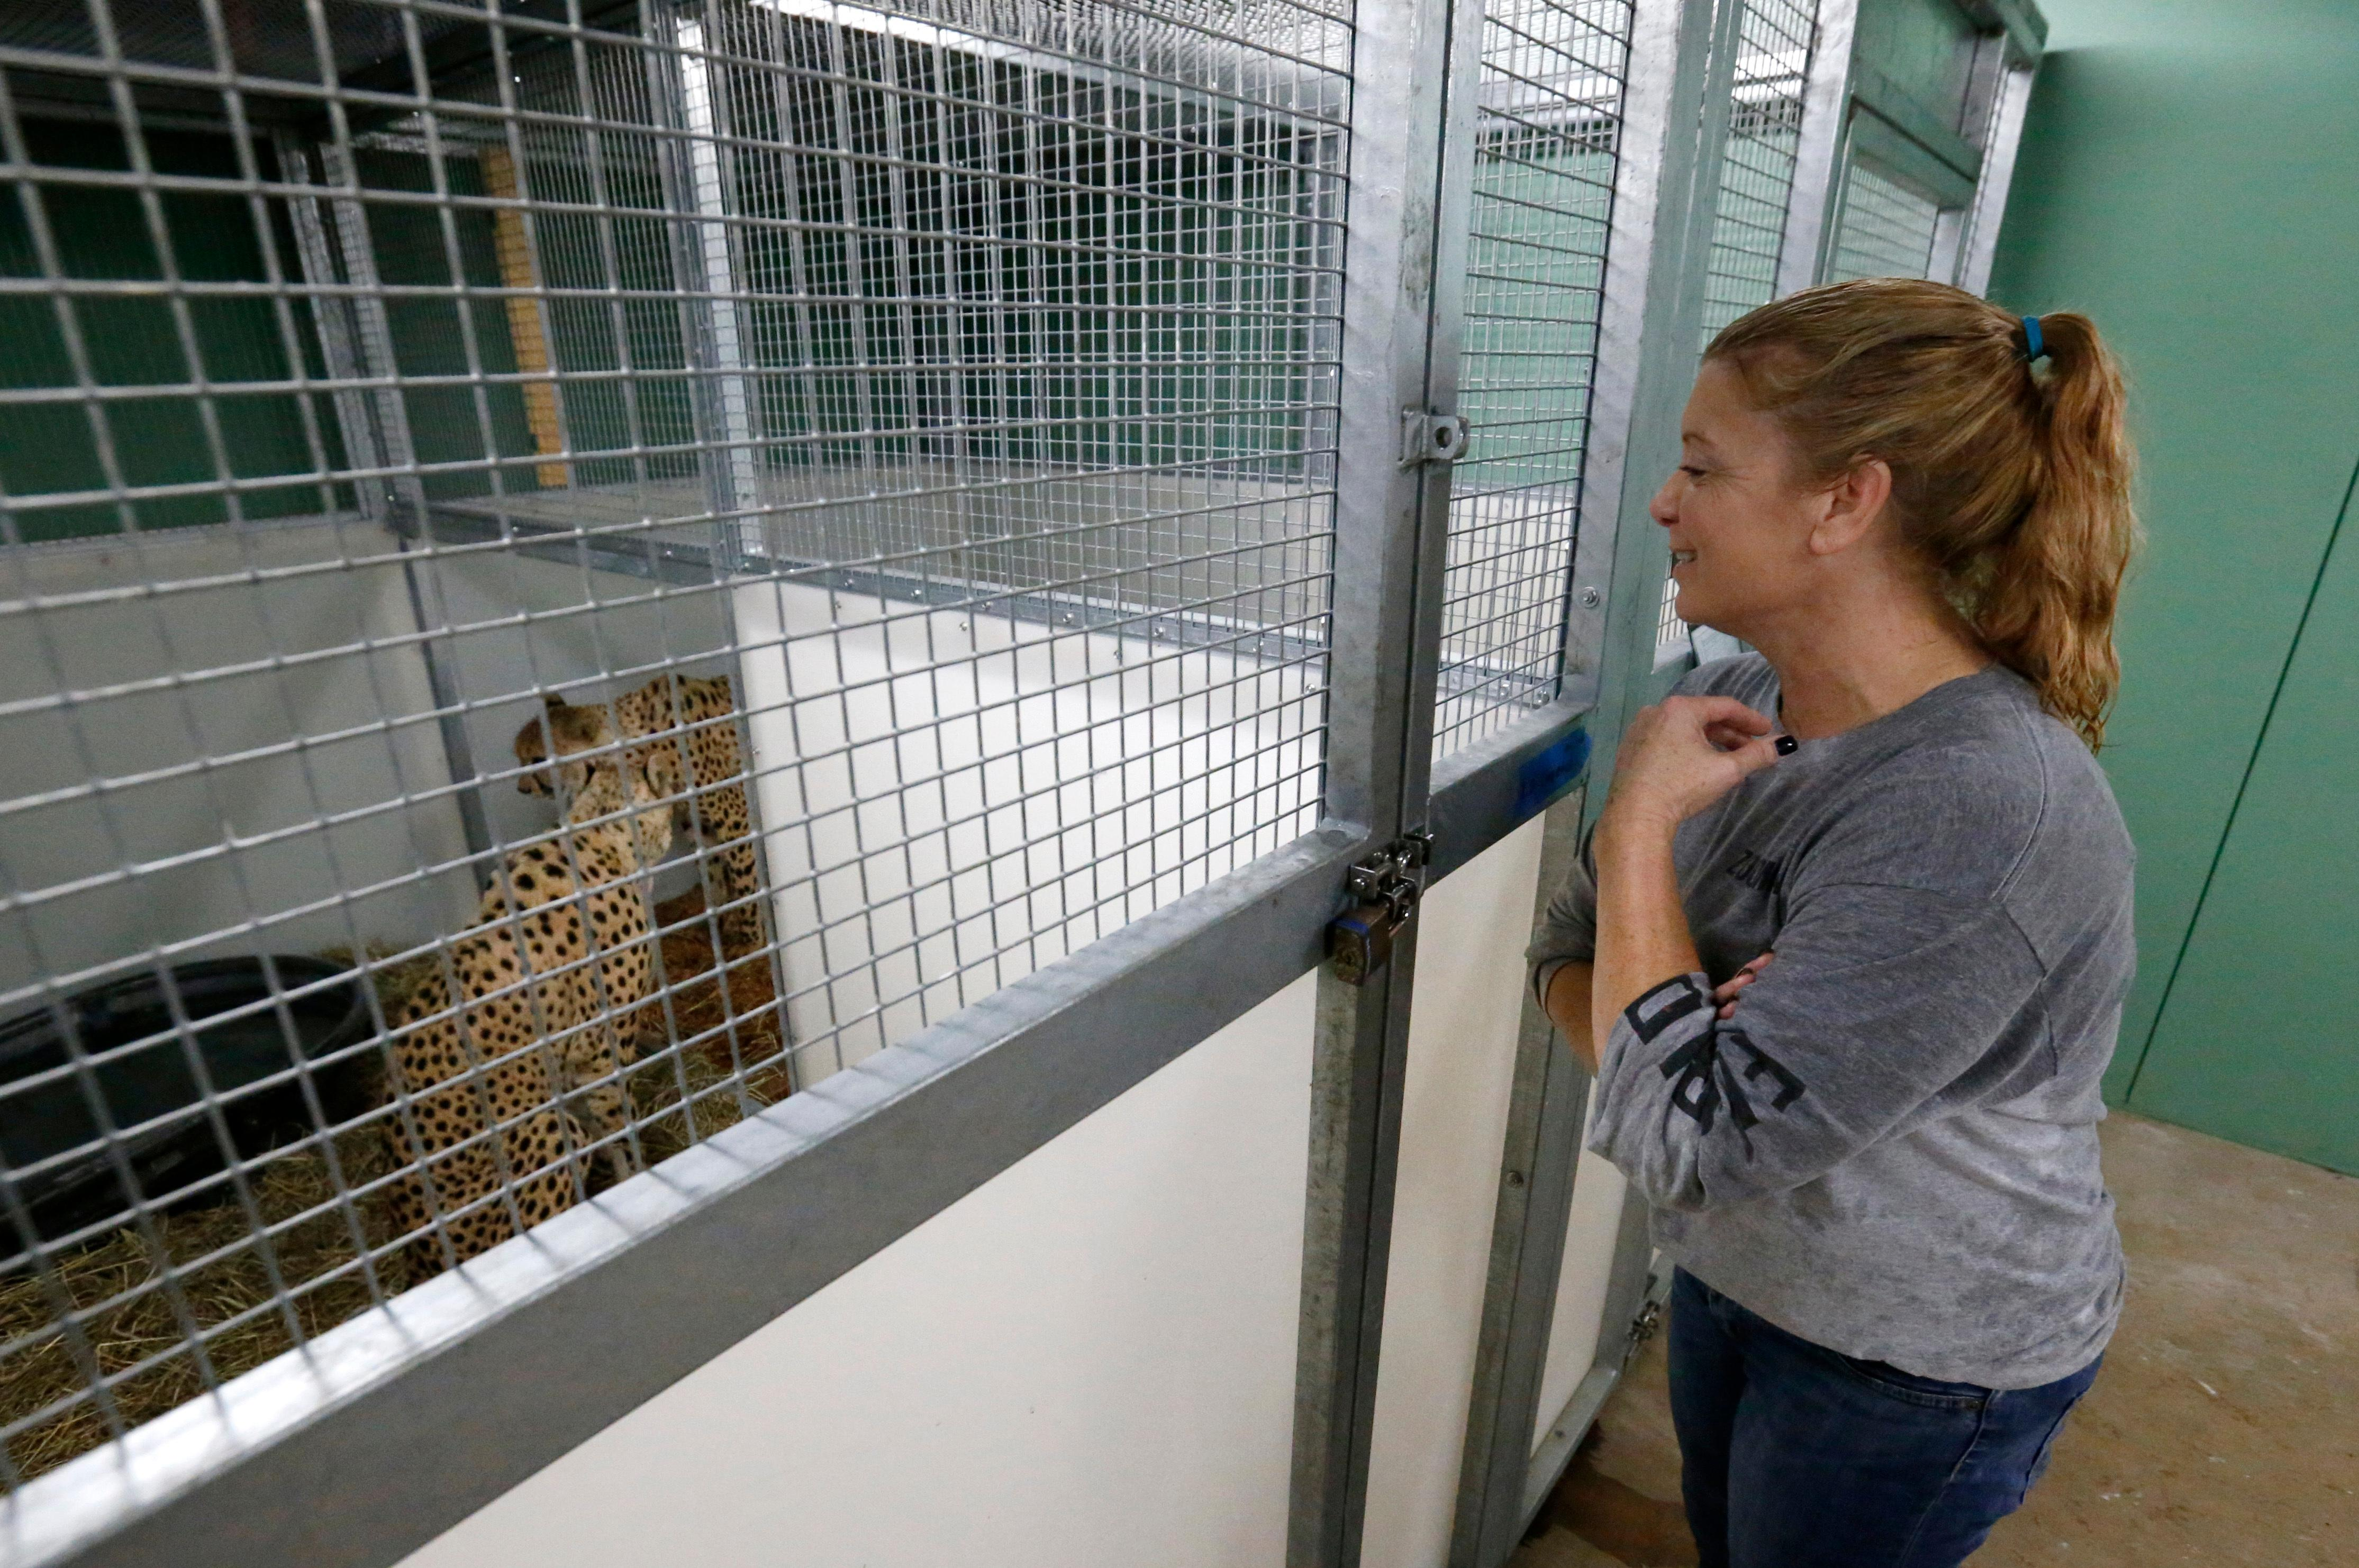 Jennifer Nelson, right, senior keeper at Zoo Miami, smiles as she watches brother cheetahs named Koda and Diesel after they were moved to a hurricane resistant structure within the zoo, Saturday, Sept. 9, 2017 in Miami. Though most animals will reman in their secure structures, the cheetahs and some birds will ride out the storm in temporary housing. (AP Photo/Wilfredo Lee)